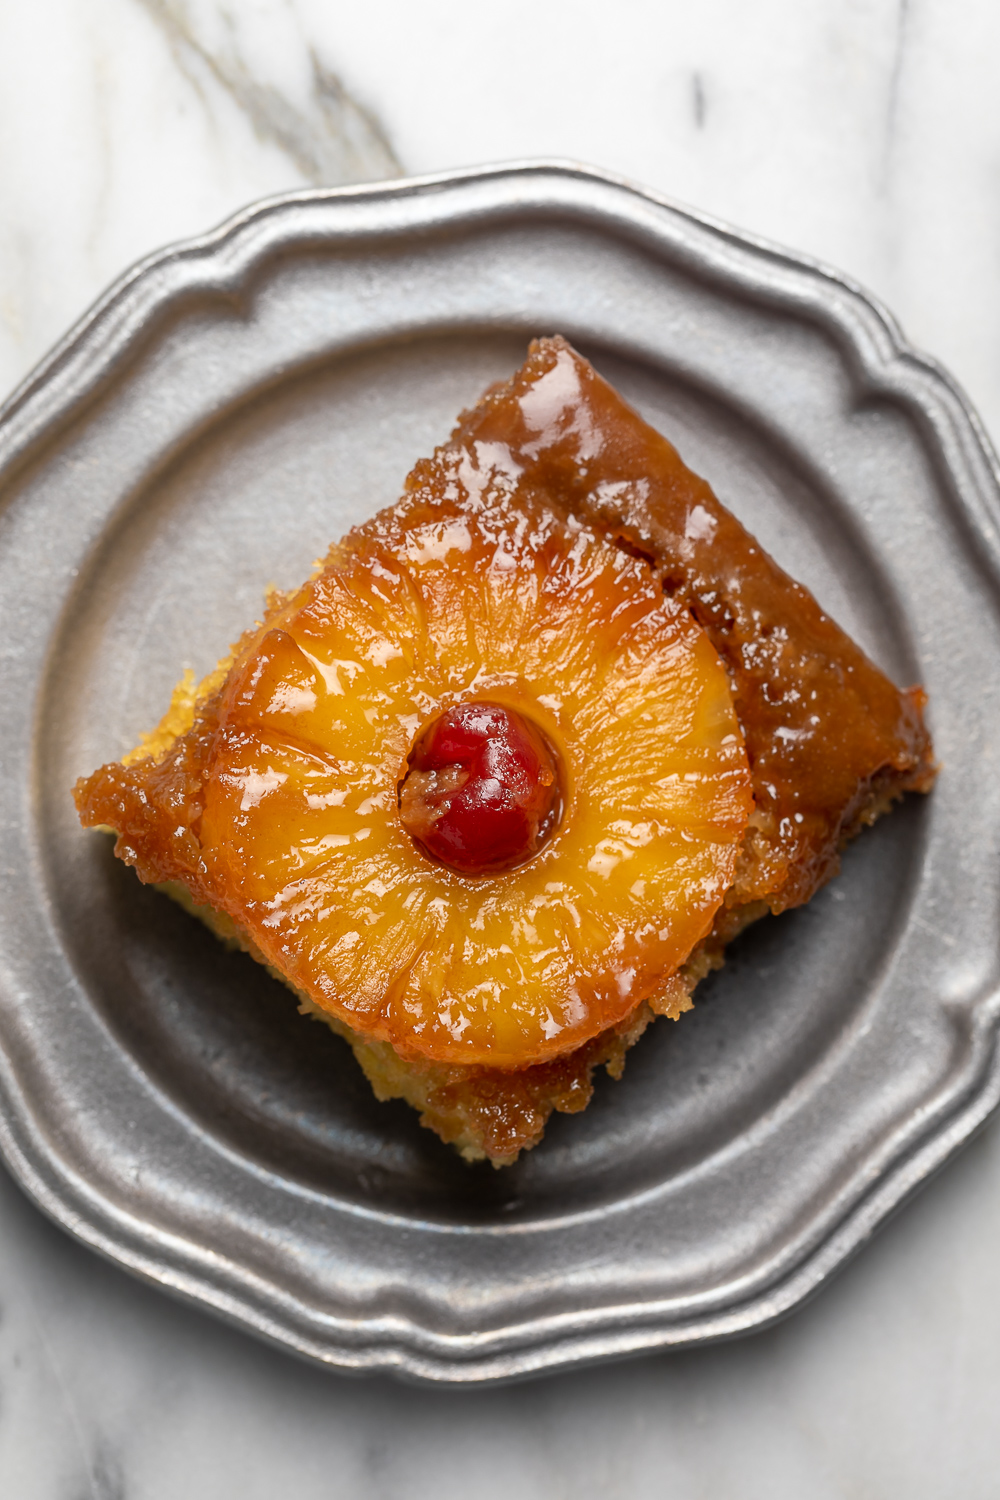 Pineapple Upside-Down Cake is sticky, sweet, and so delicious! This version serves a crowd and is easy enough to whip up on a weeknight! Delicious with a scoop of vanilla ice cream on top!